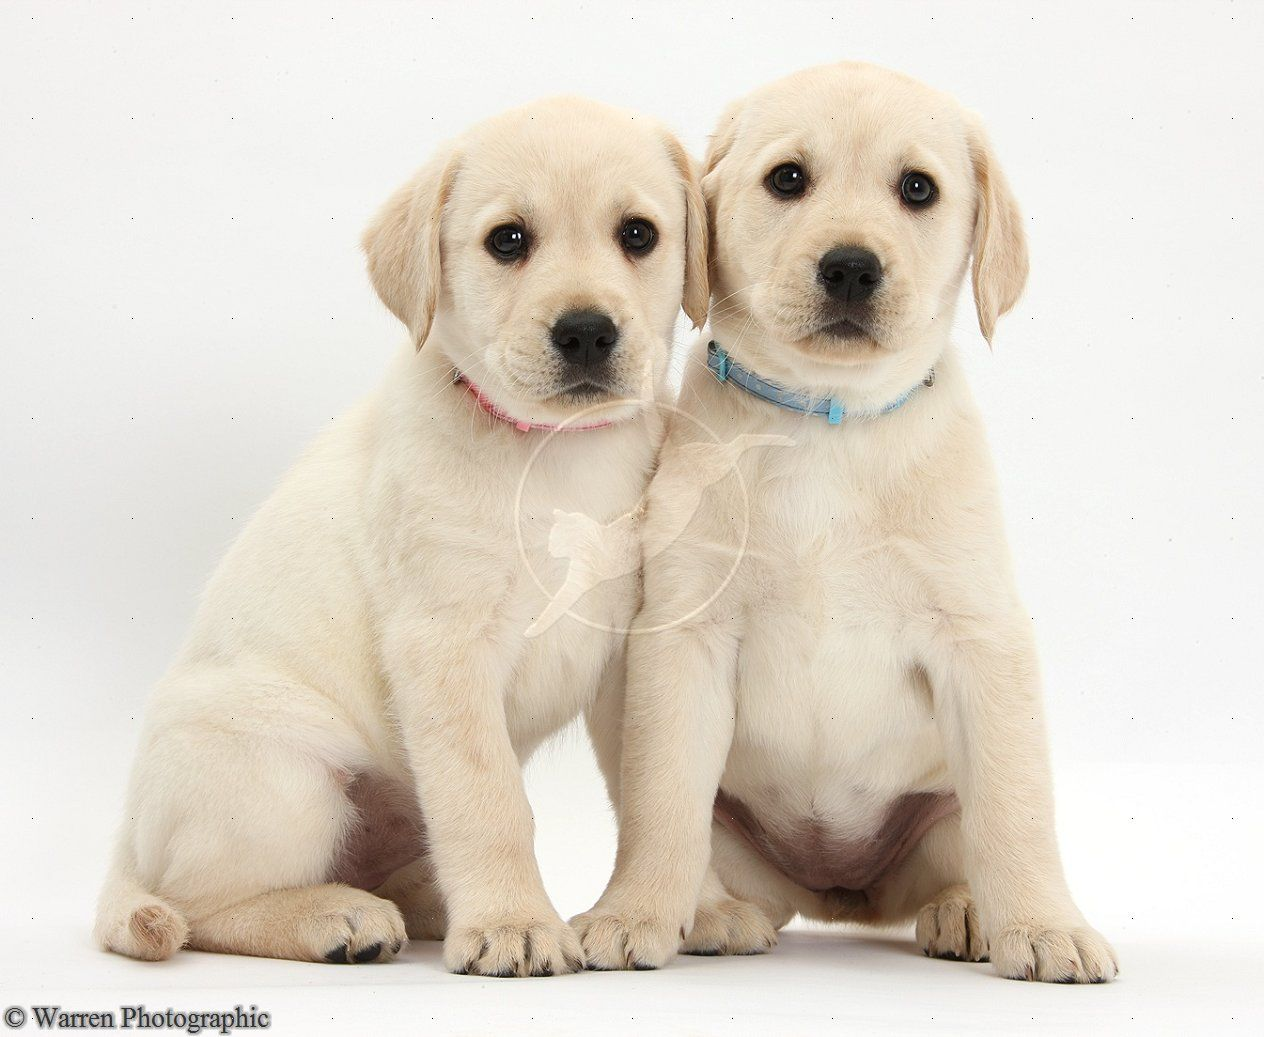 White Lab Yellow Labrador Retriever Puppies 8 Weeks Old Photo